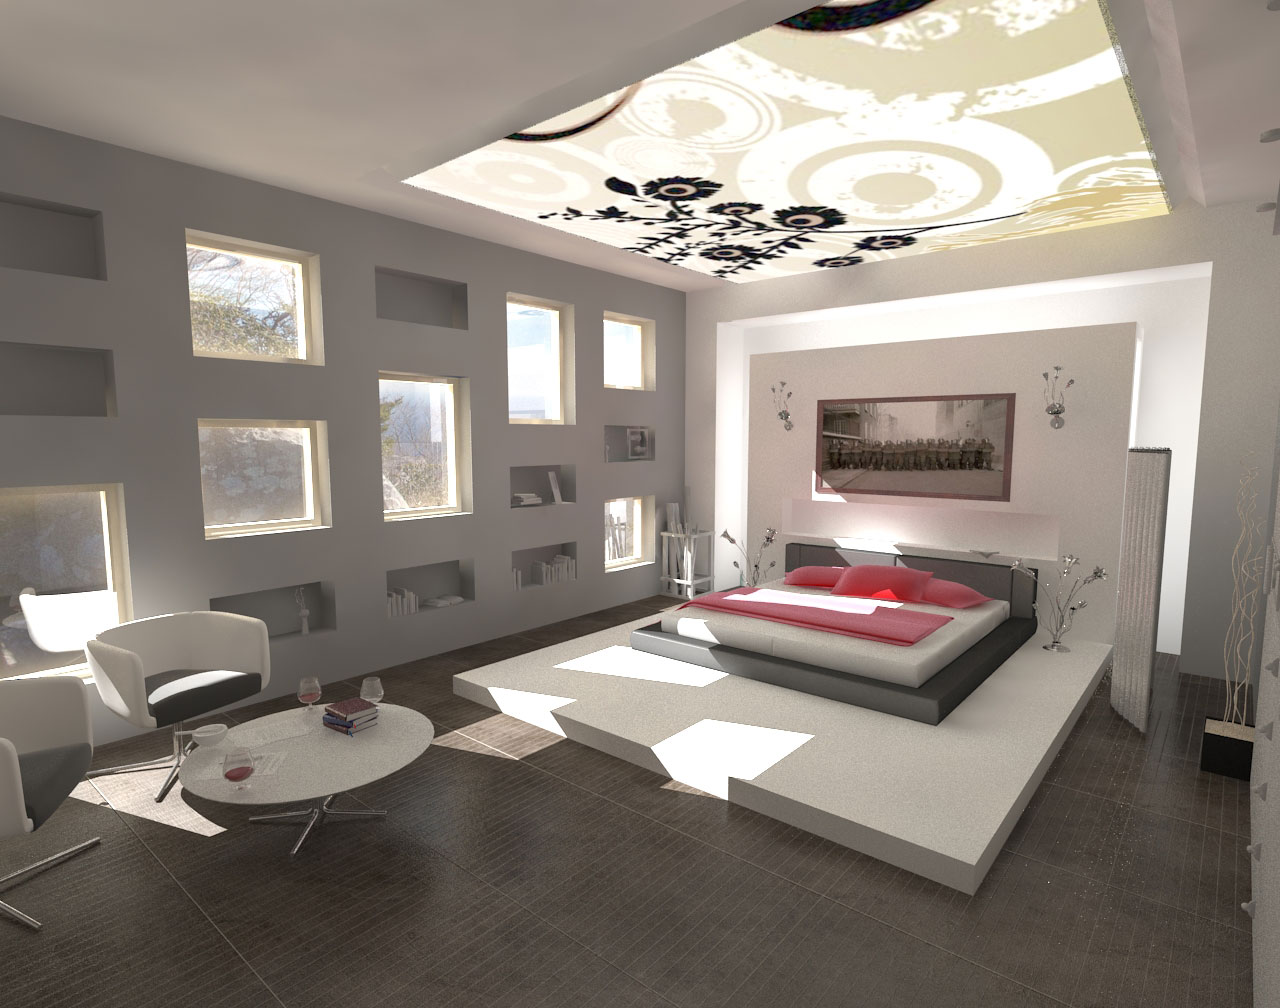 Decorations minimalist design modern bedroom interior for Modern interior designs for bedrooms